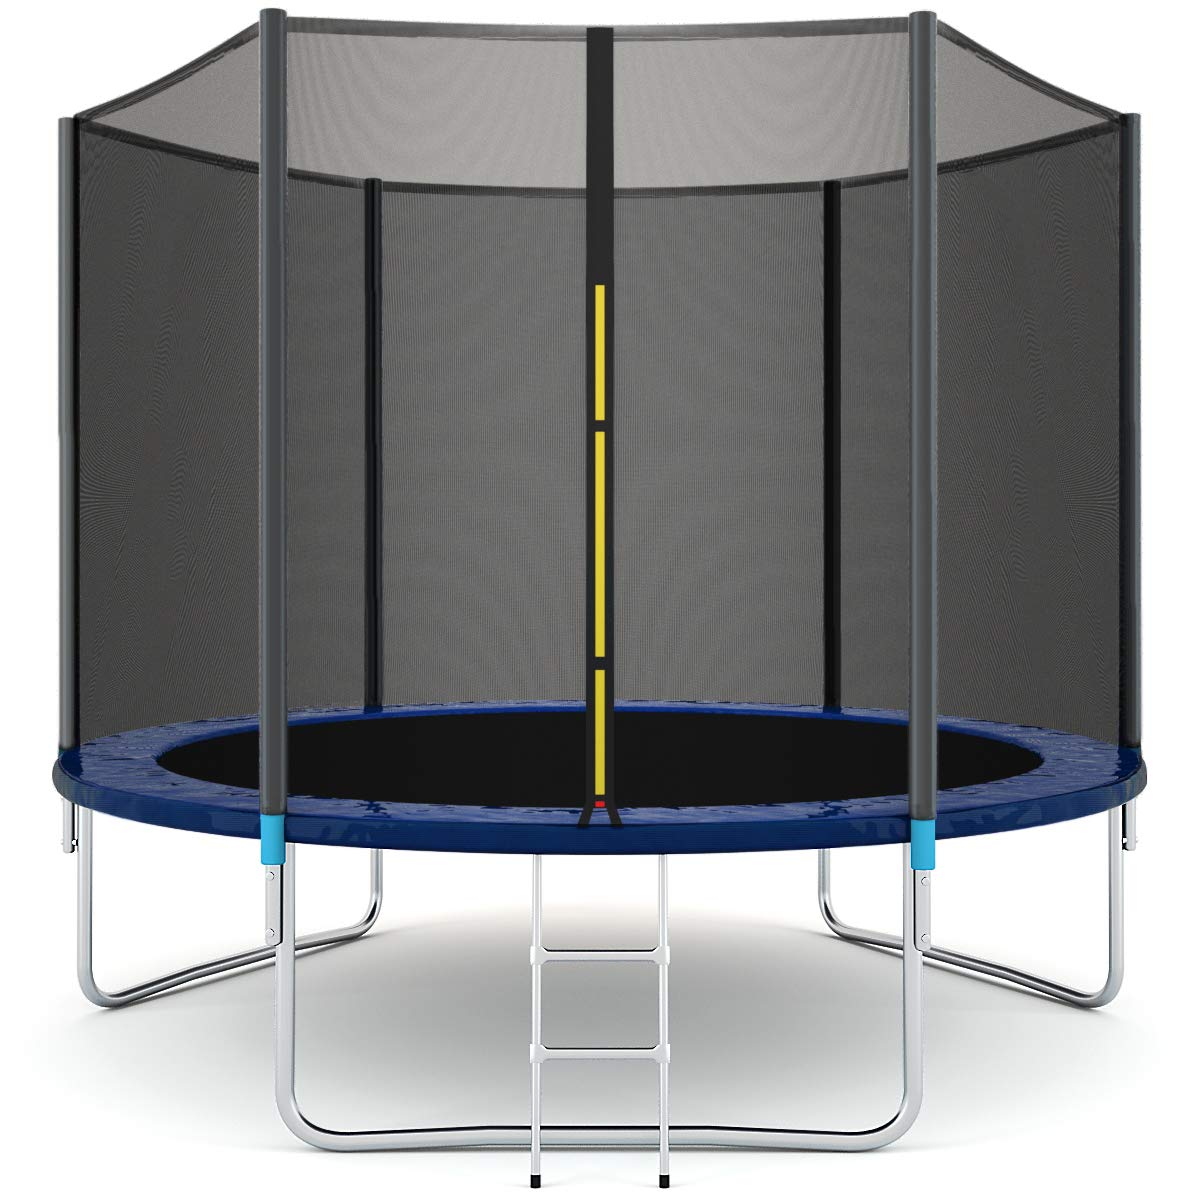 Giantex Trampoline Combo Bounce Jump Safety Enclosure Net W/Spring Pad Ladder (10 FT) by Giantex